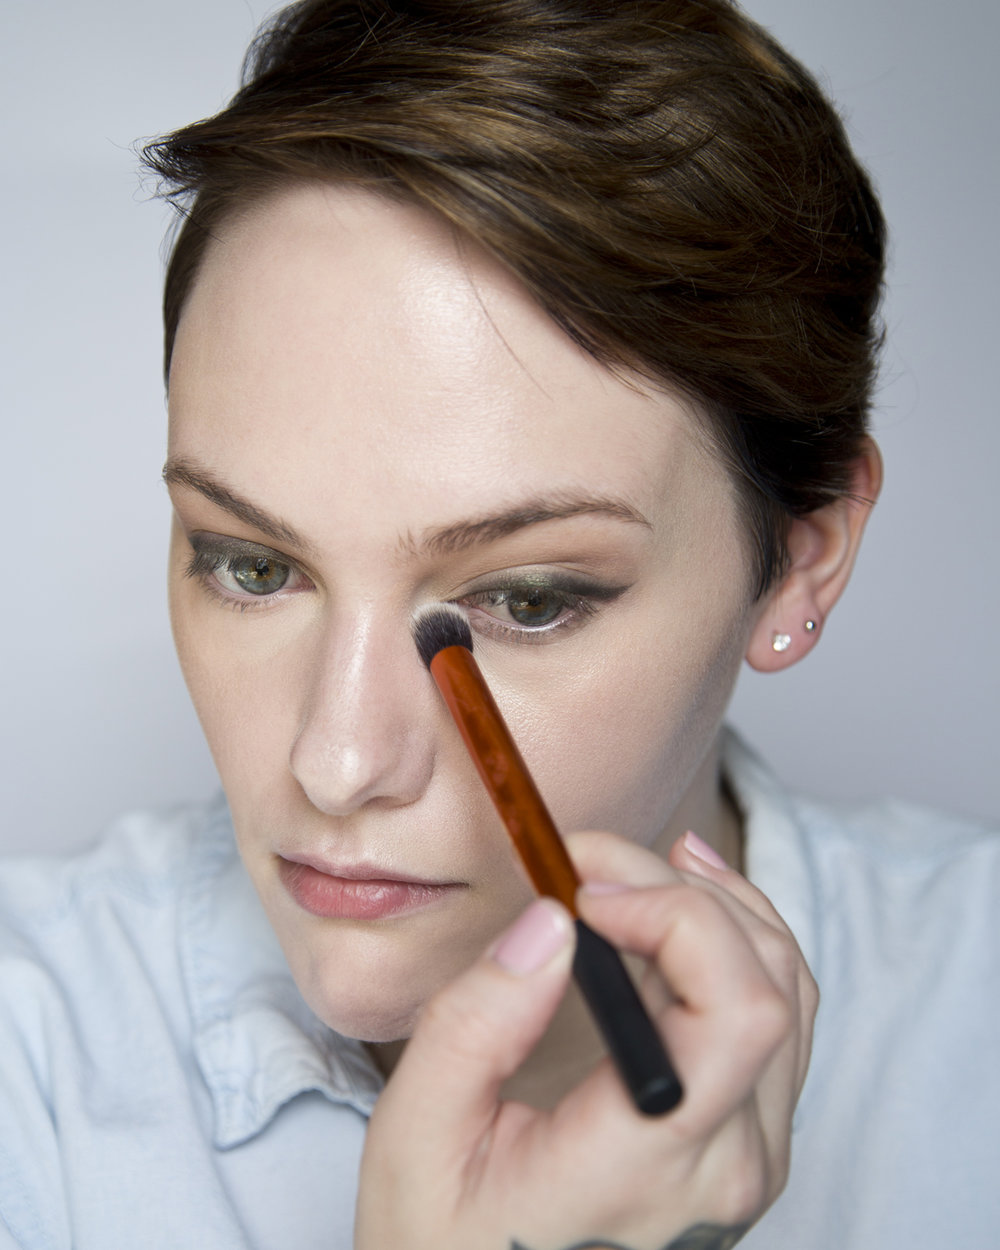 Before setting my concealer I like to go in with a small brush or a q-tip and pick up and blend out some of the concealer that settles in my under eye creases. Some people like to set immediately after applying concealer to avoid creasing but I find that I'm less likely to crease later in the day if I let it crease before and then pick up the extra product that settled before setting the area.